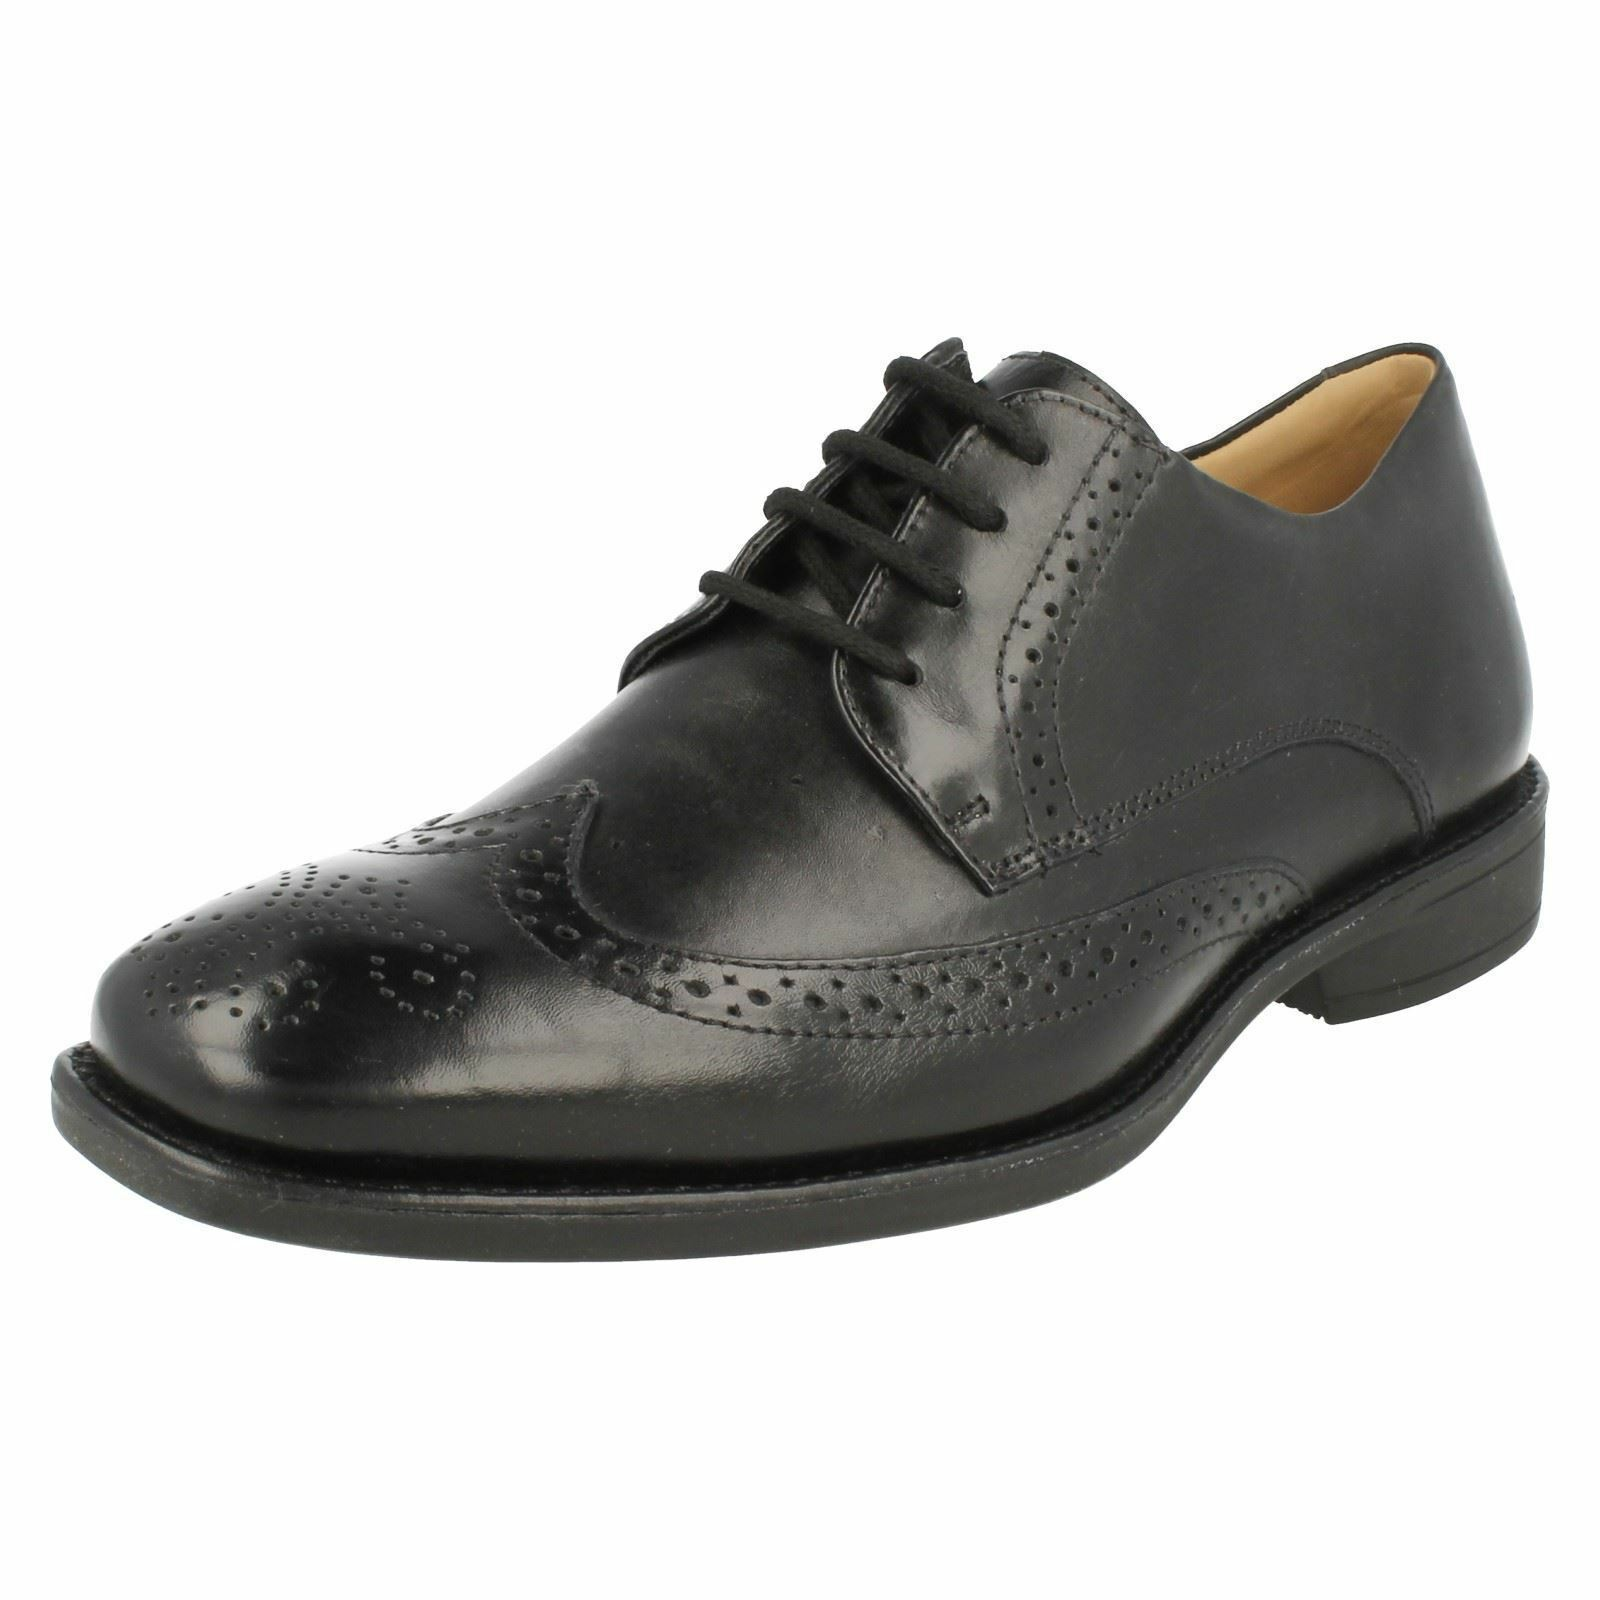 Mens Anatomic Black Touch Leather Lace Up Brogue Shoes Mococa 929267